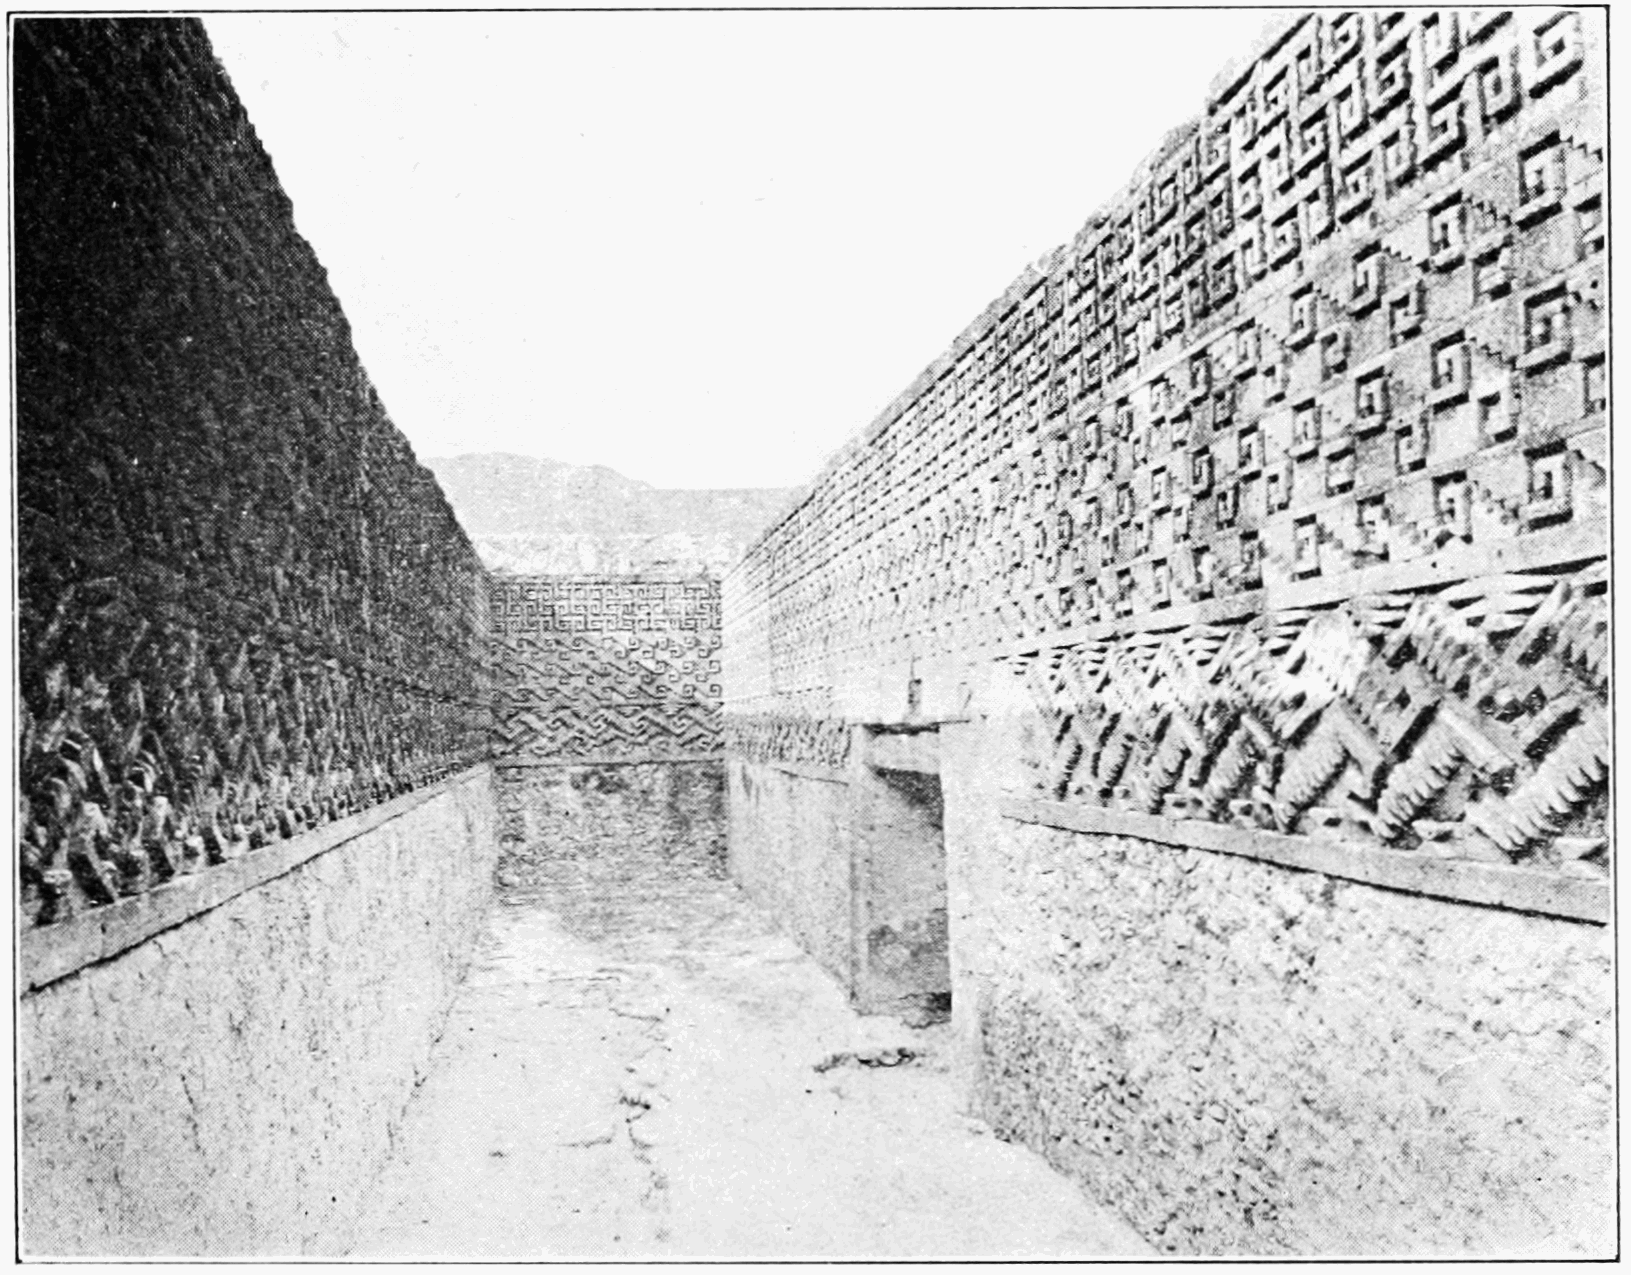 PSM V73 D401 Hall of mosaics on monte alban.png